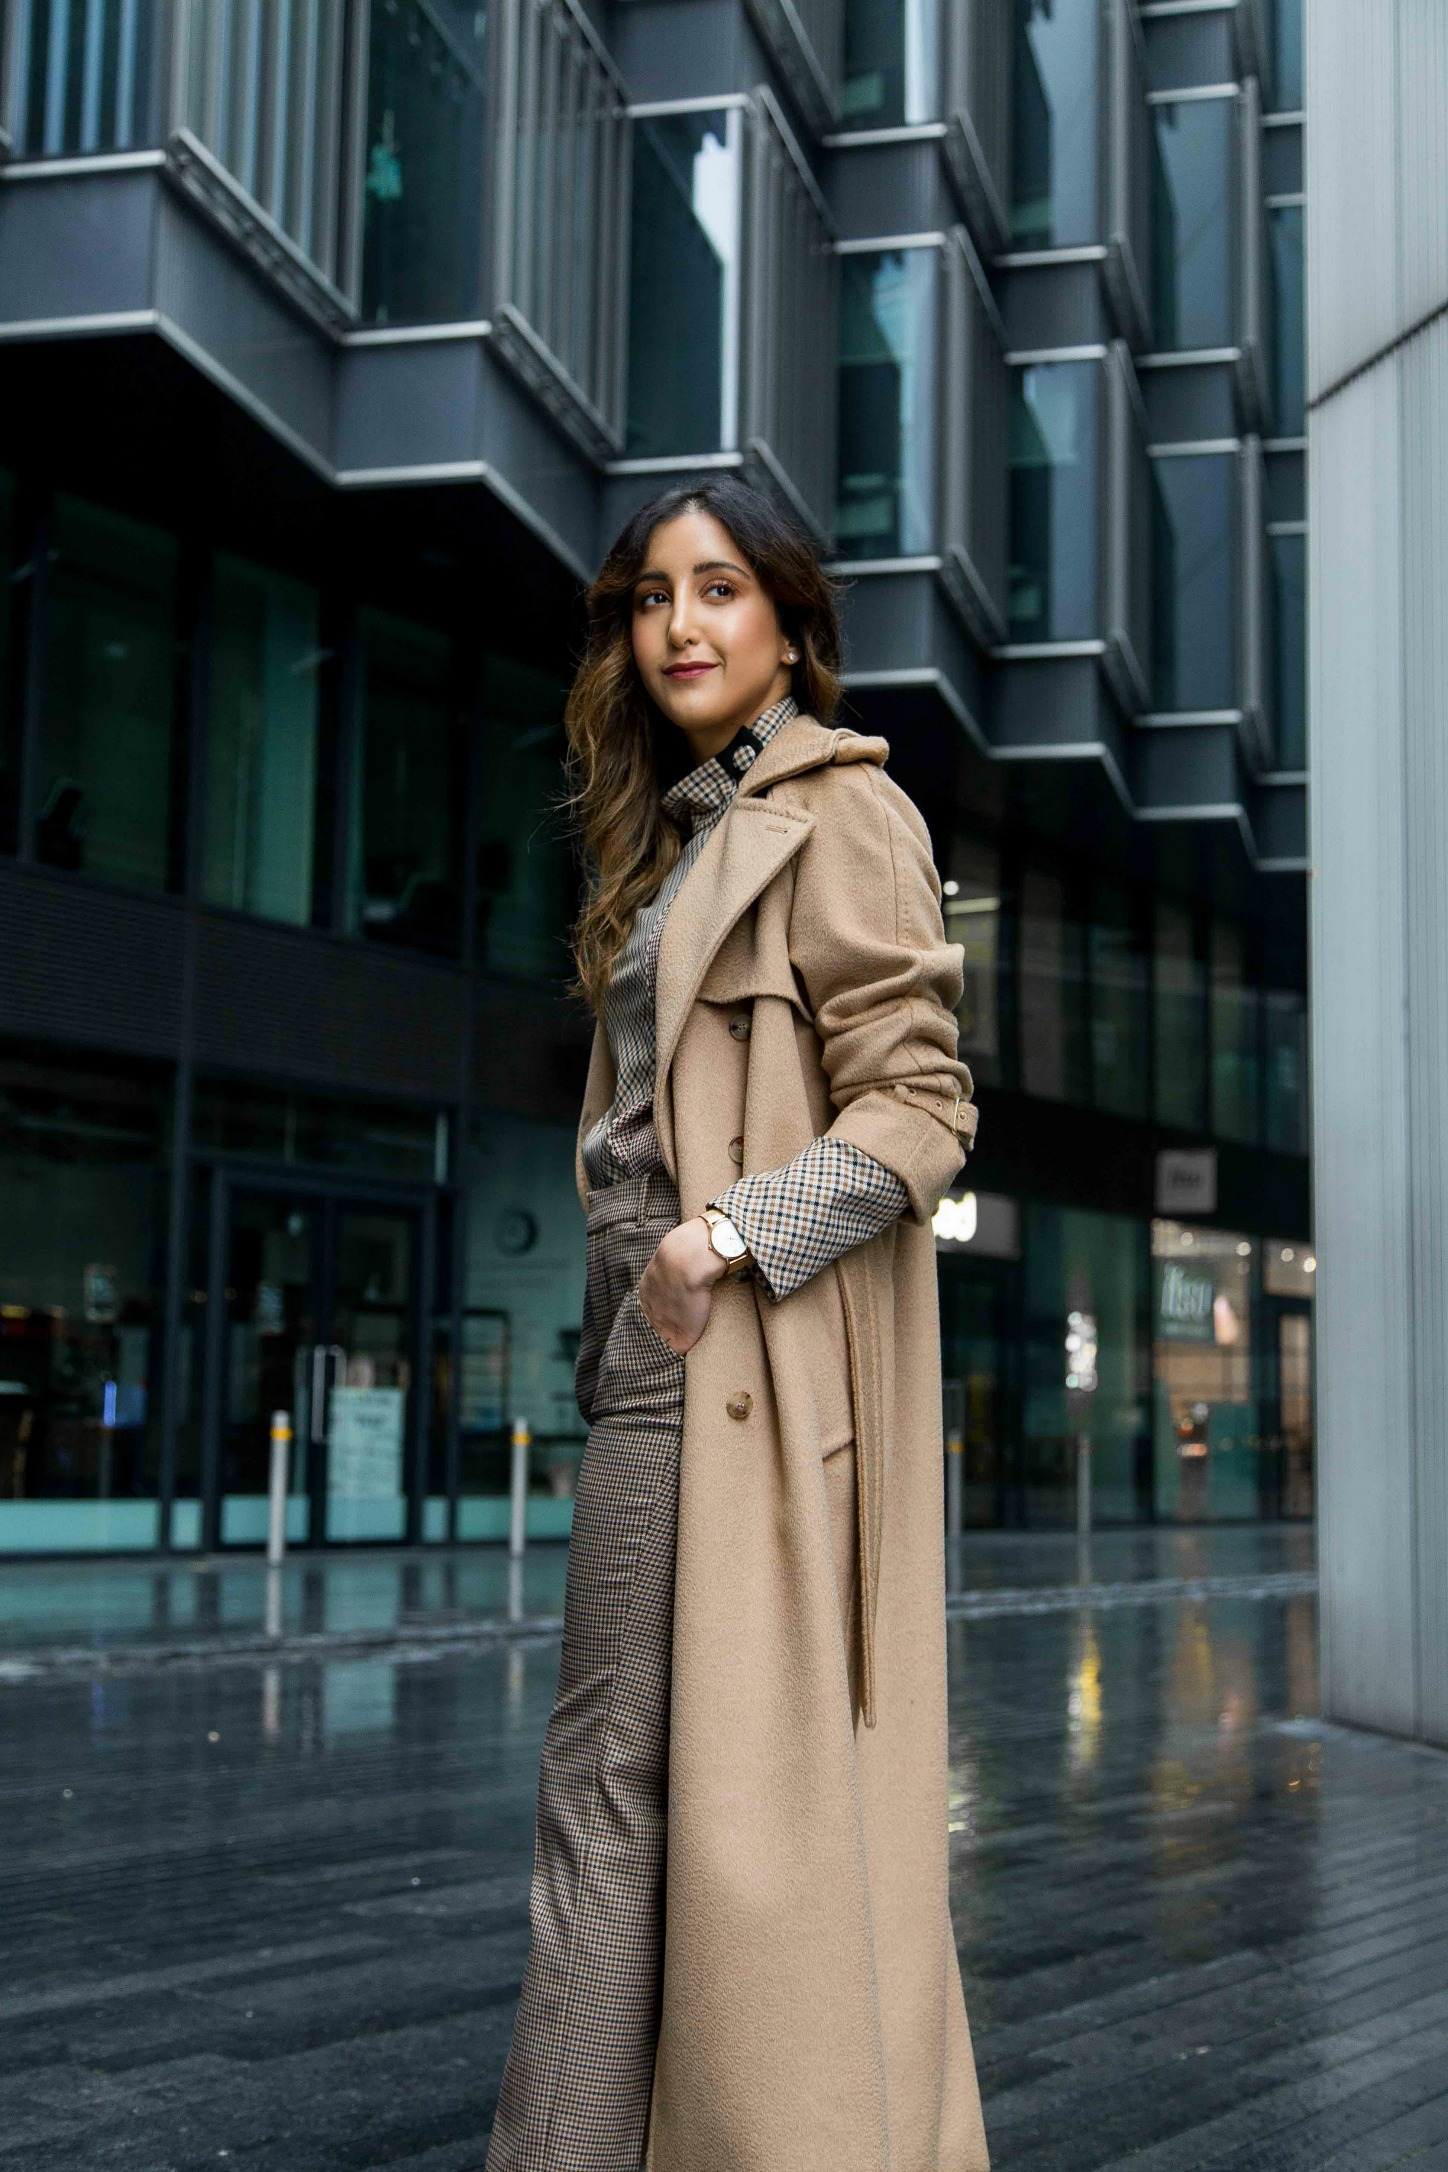 Cocooned in Camel and Check - Max Mara Camel Trench 'Kriss ...